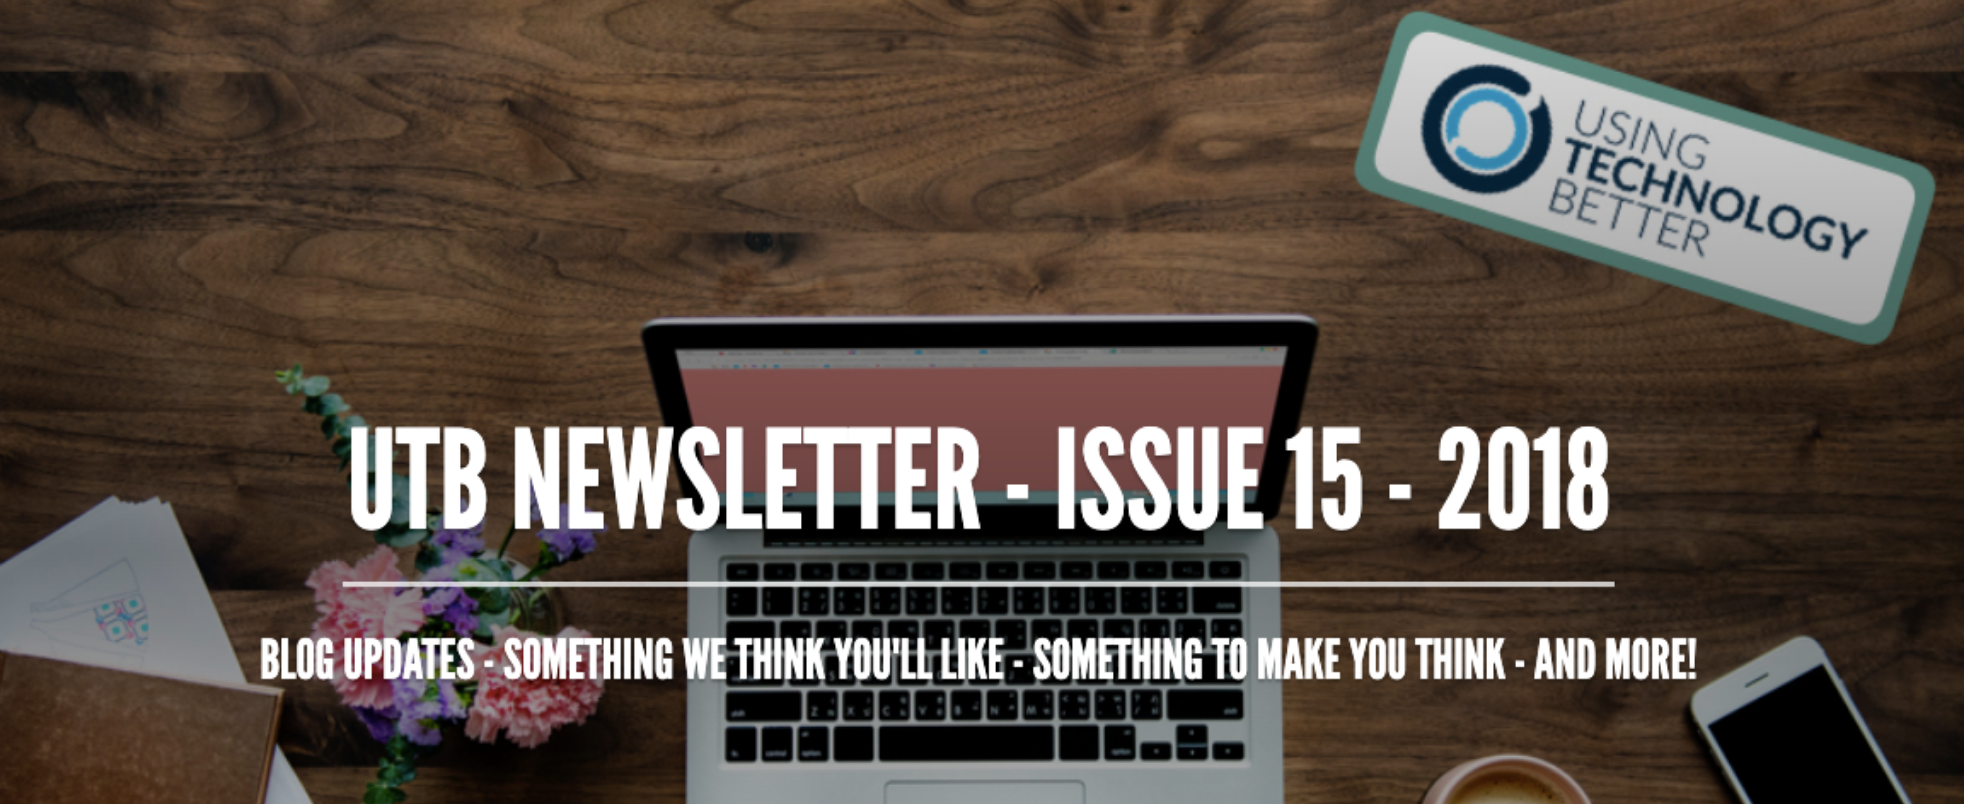 Newsletter Issue 15 - 2018